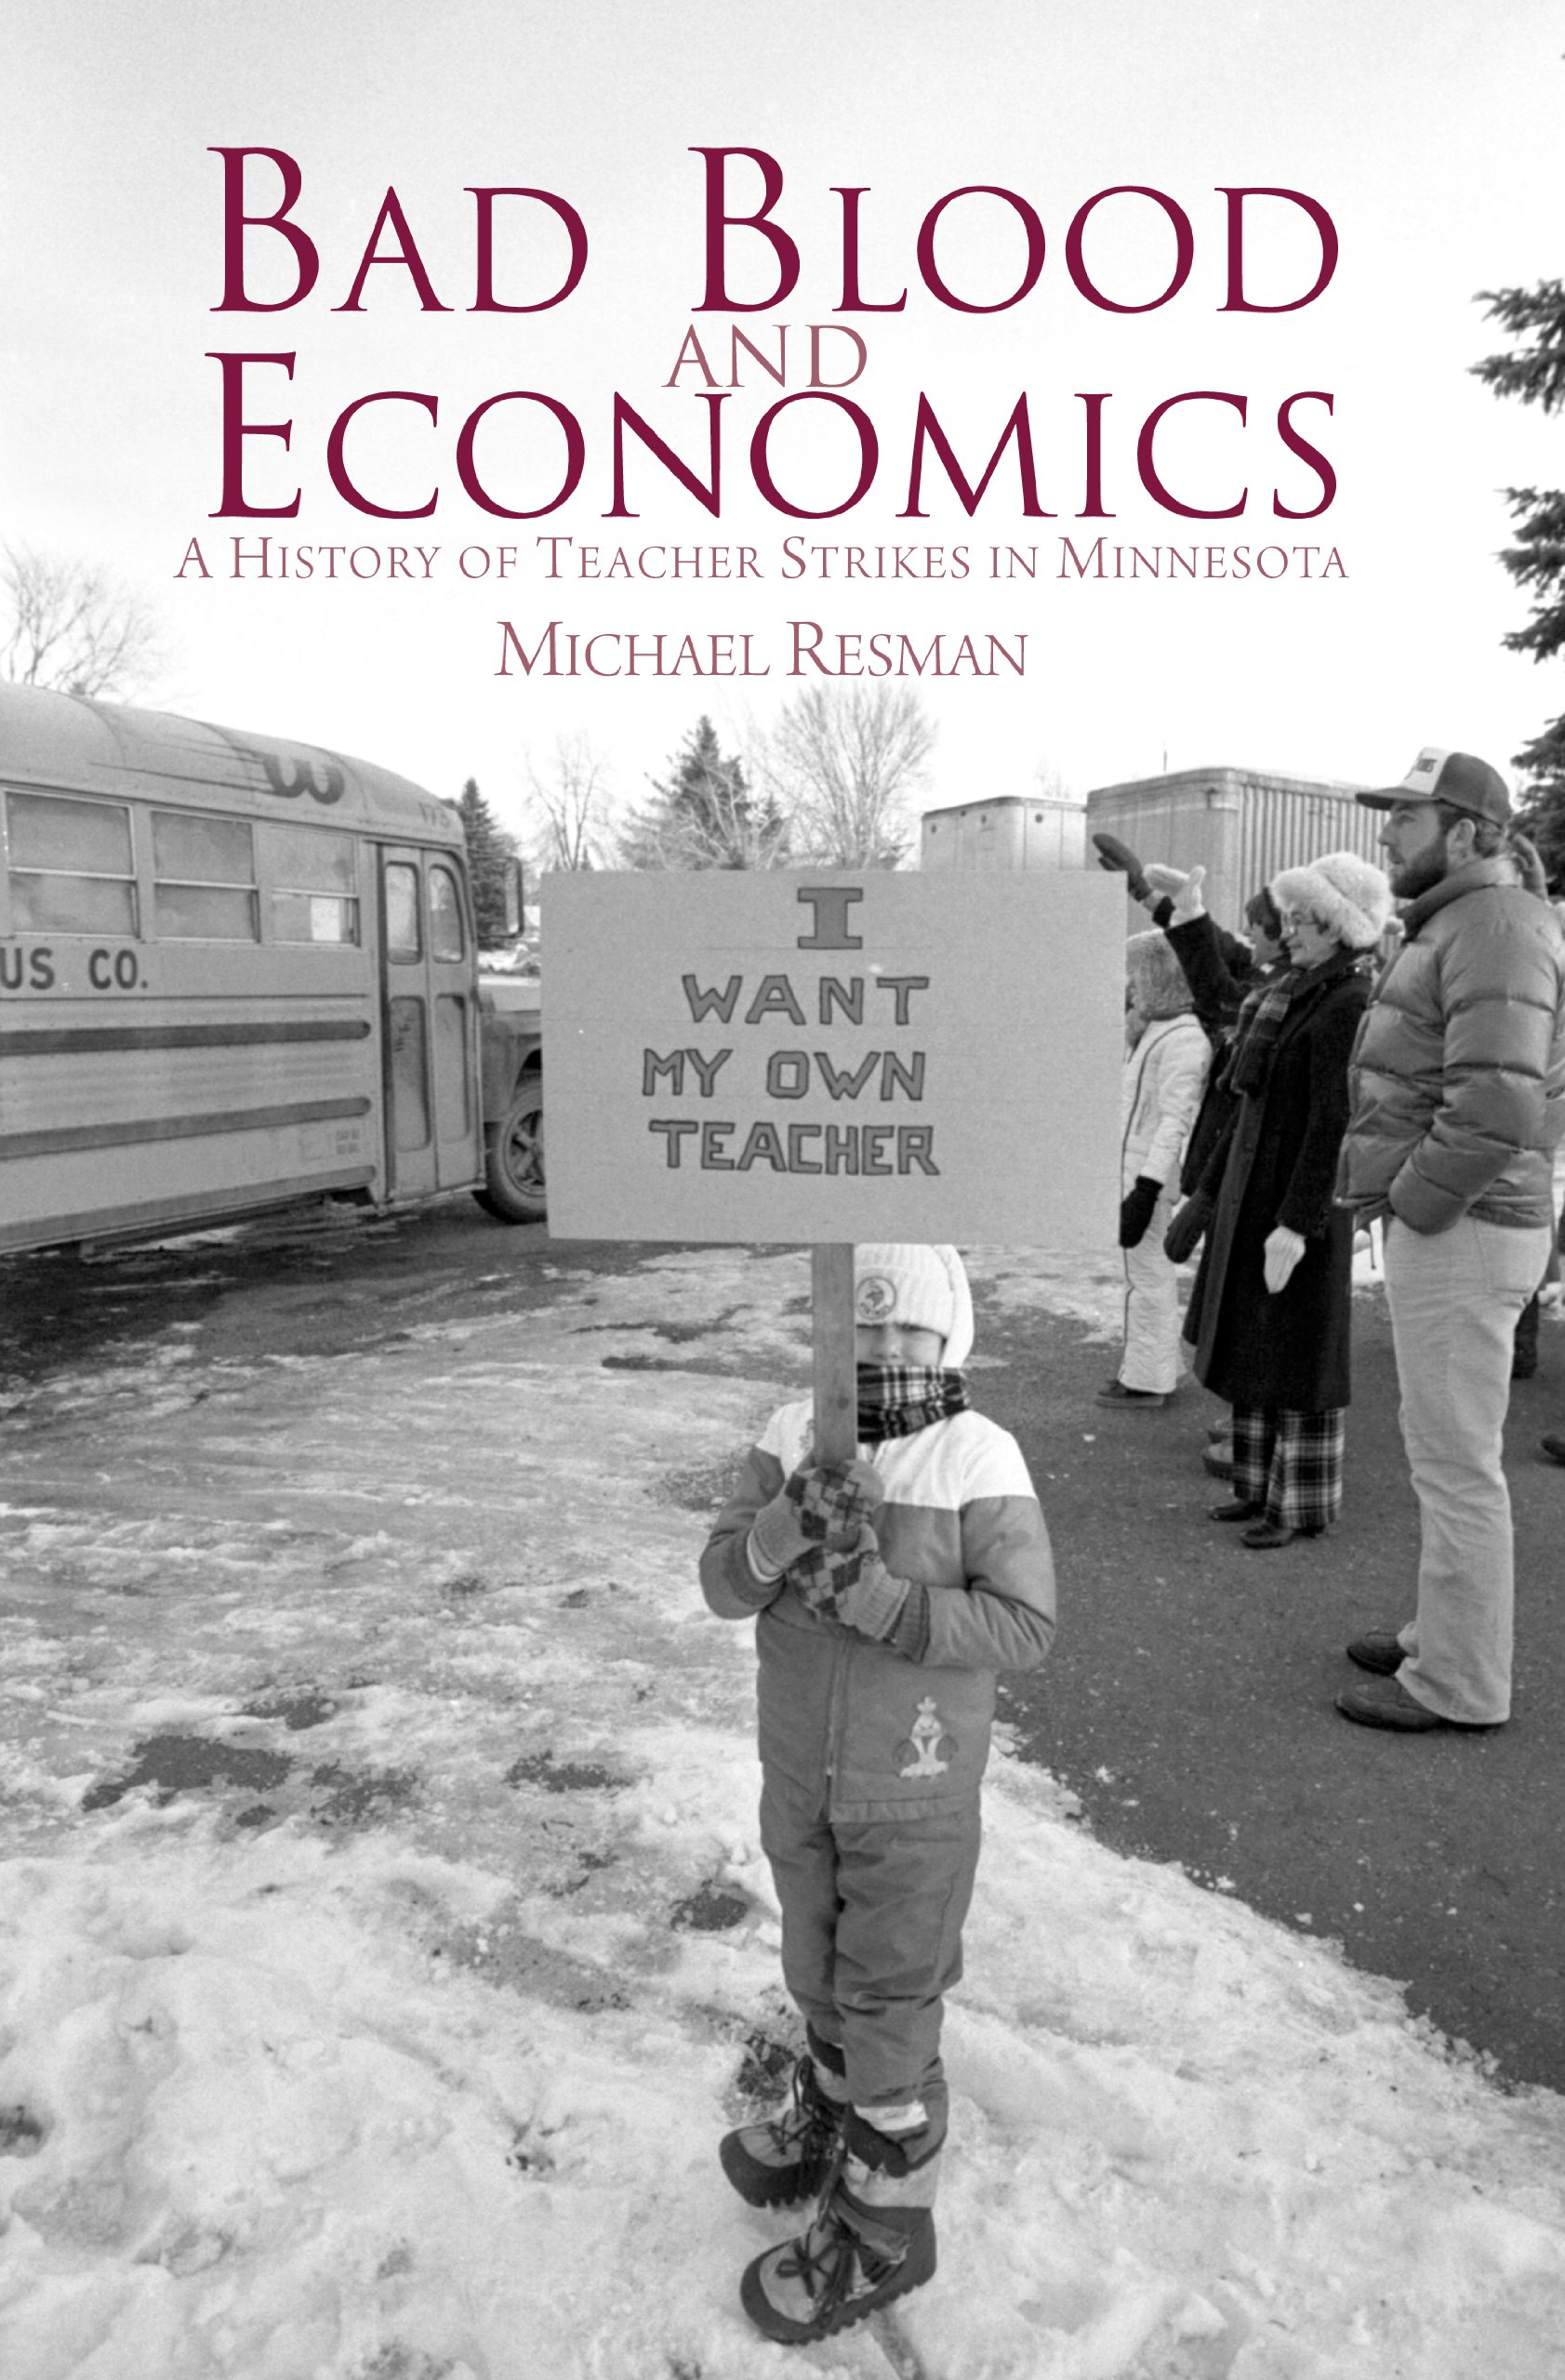 Bad Blood and Economics: A History of Teacher Strikes in Minnesota pdf